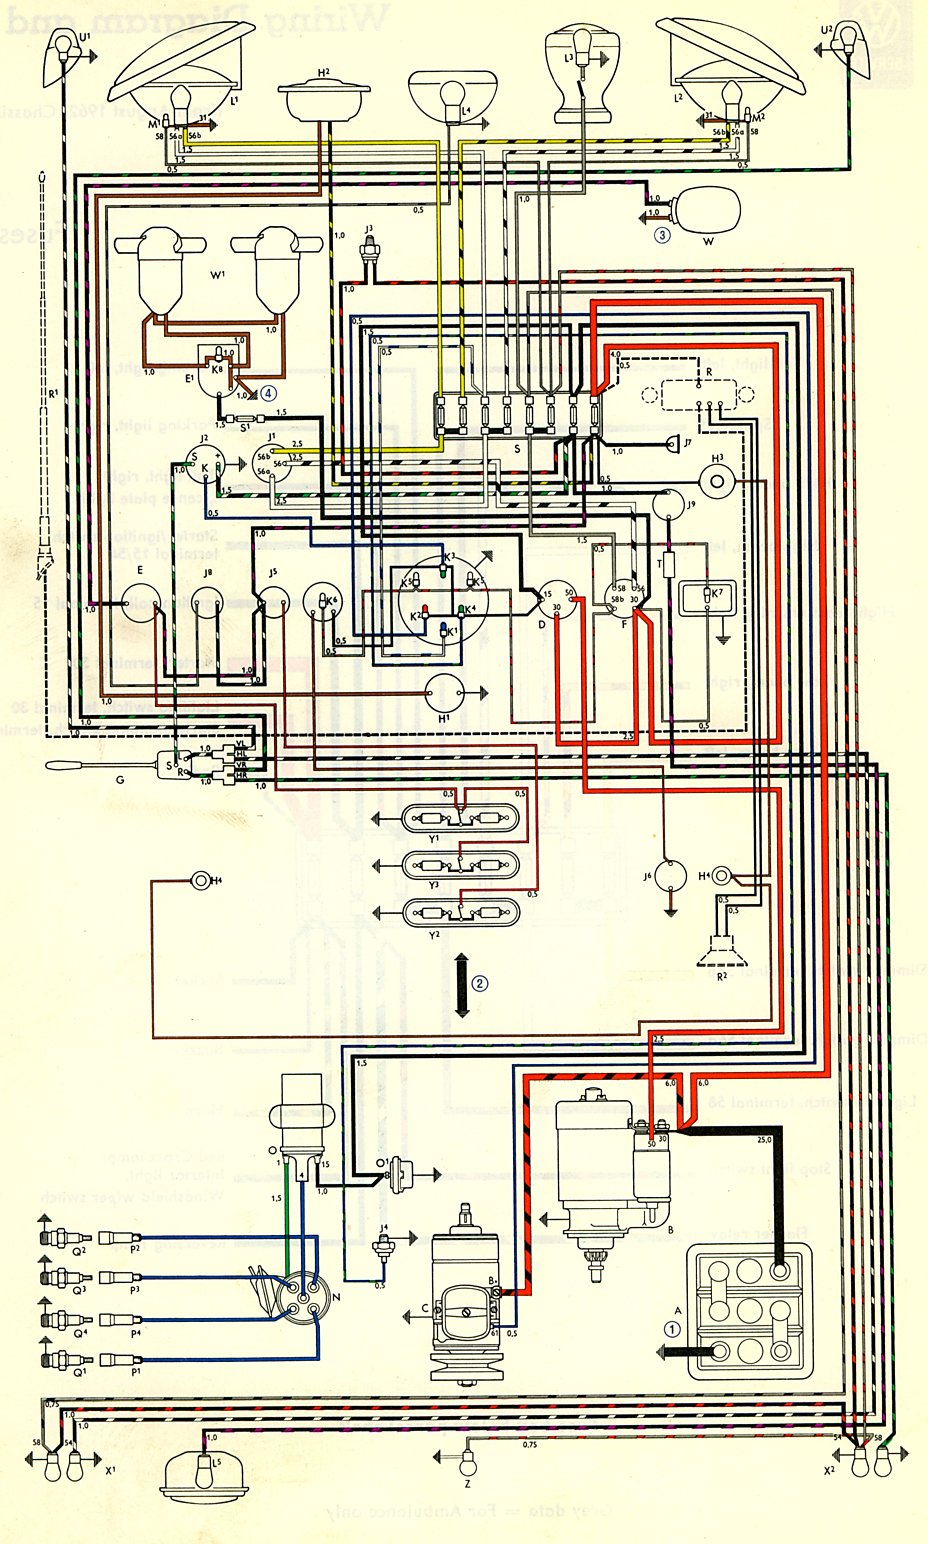 1963 Vw Bus Wiring Diagram - Wiring Diagram Write  Vw Wiring Diagram on 1971 vw super beetle starter diagram, 70 vw beetle, 70 vw chassis, 70 vw engine, bay window diagram, 1968 vw beetle speedometer diagram, 1970 vw electrical diagram, 74 super beetle front end diagram, vw type 3 engine diagram, vw beetle fuse box diagram, 2nd gen eclipse alternator diagram,